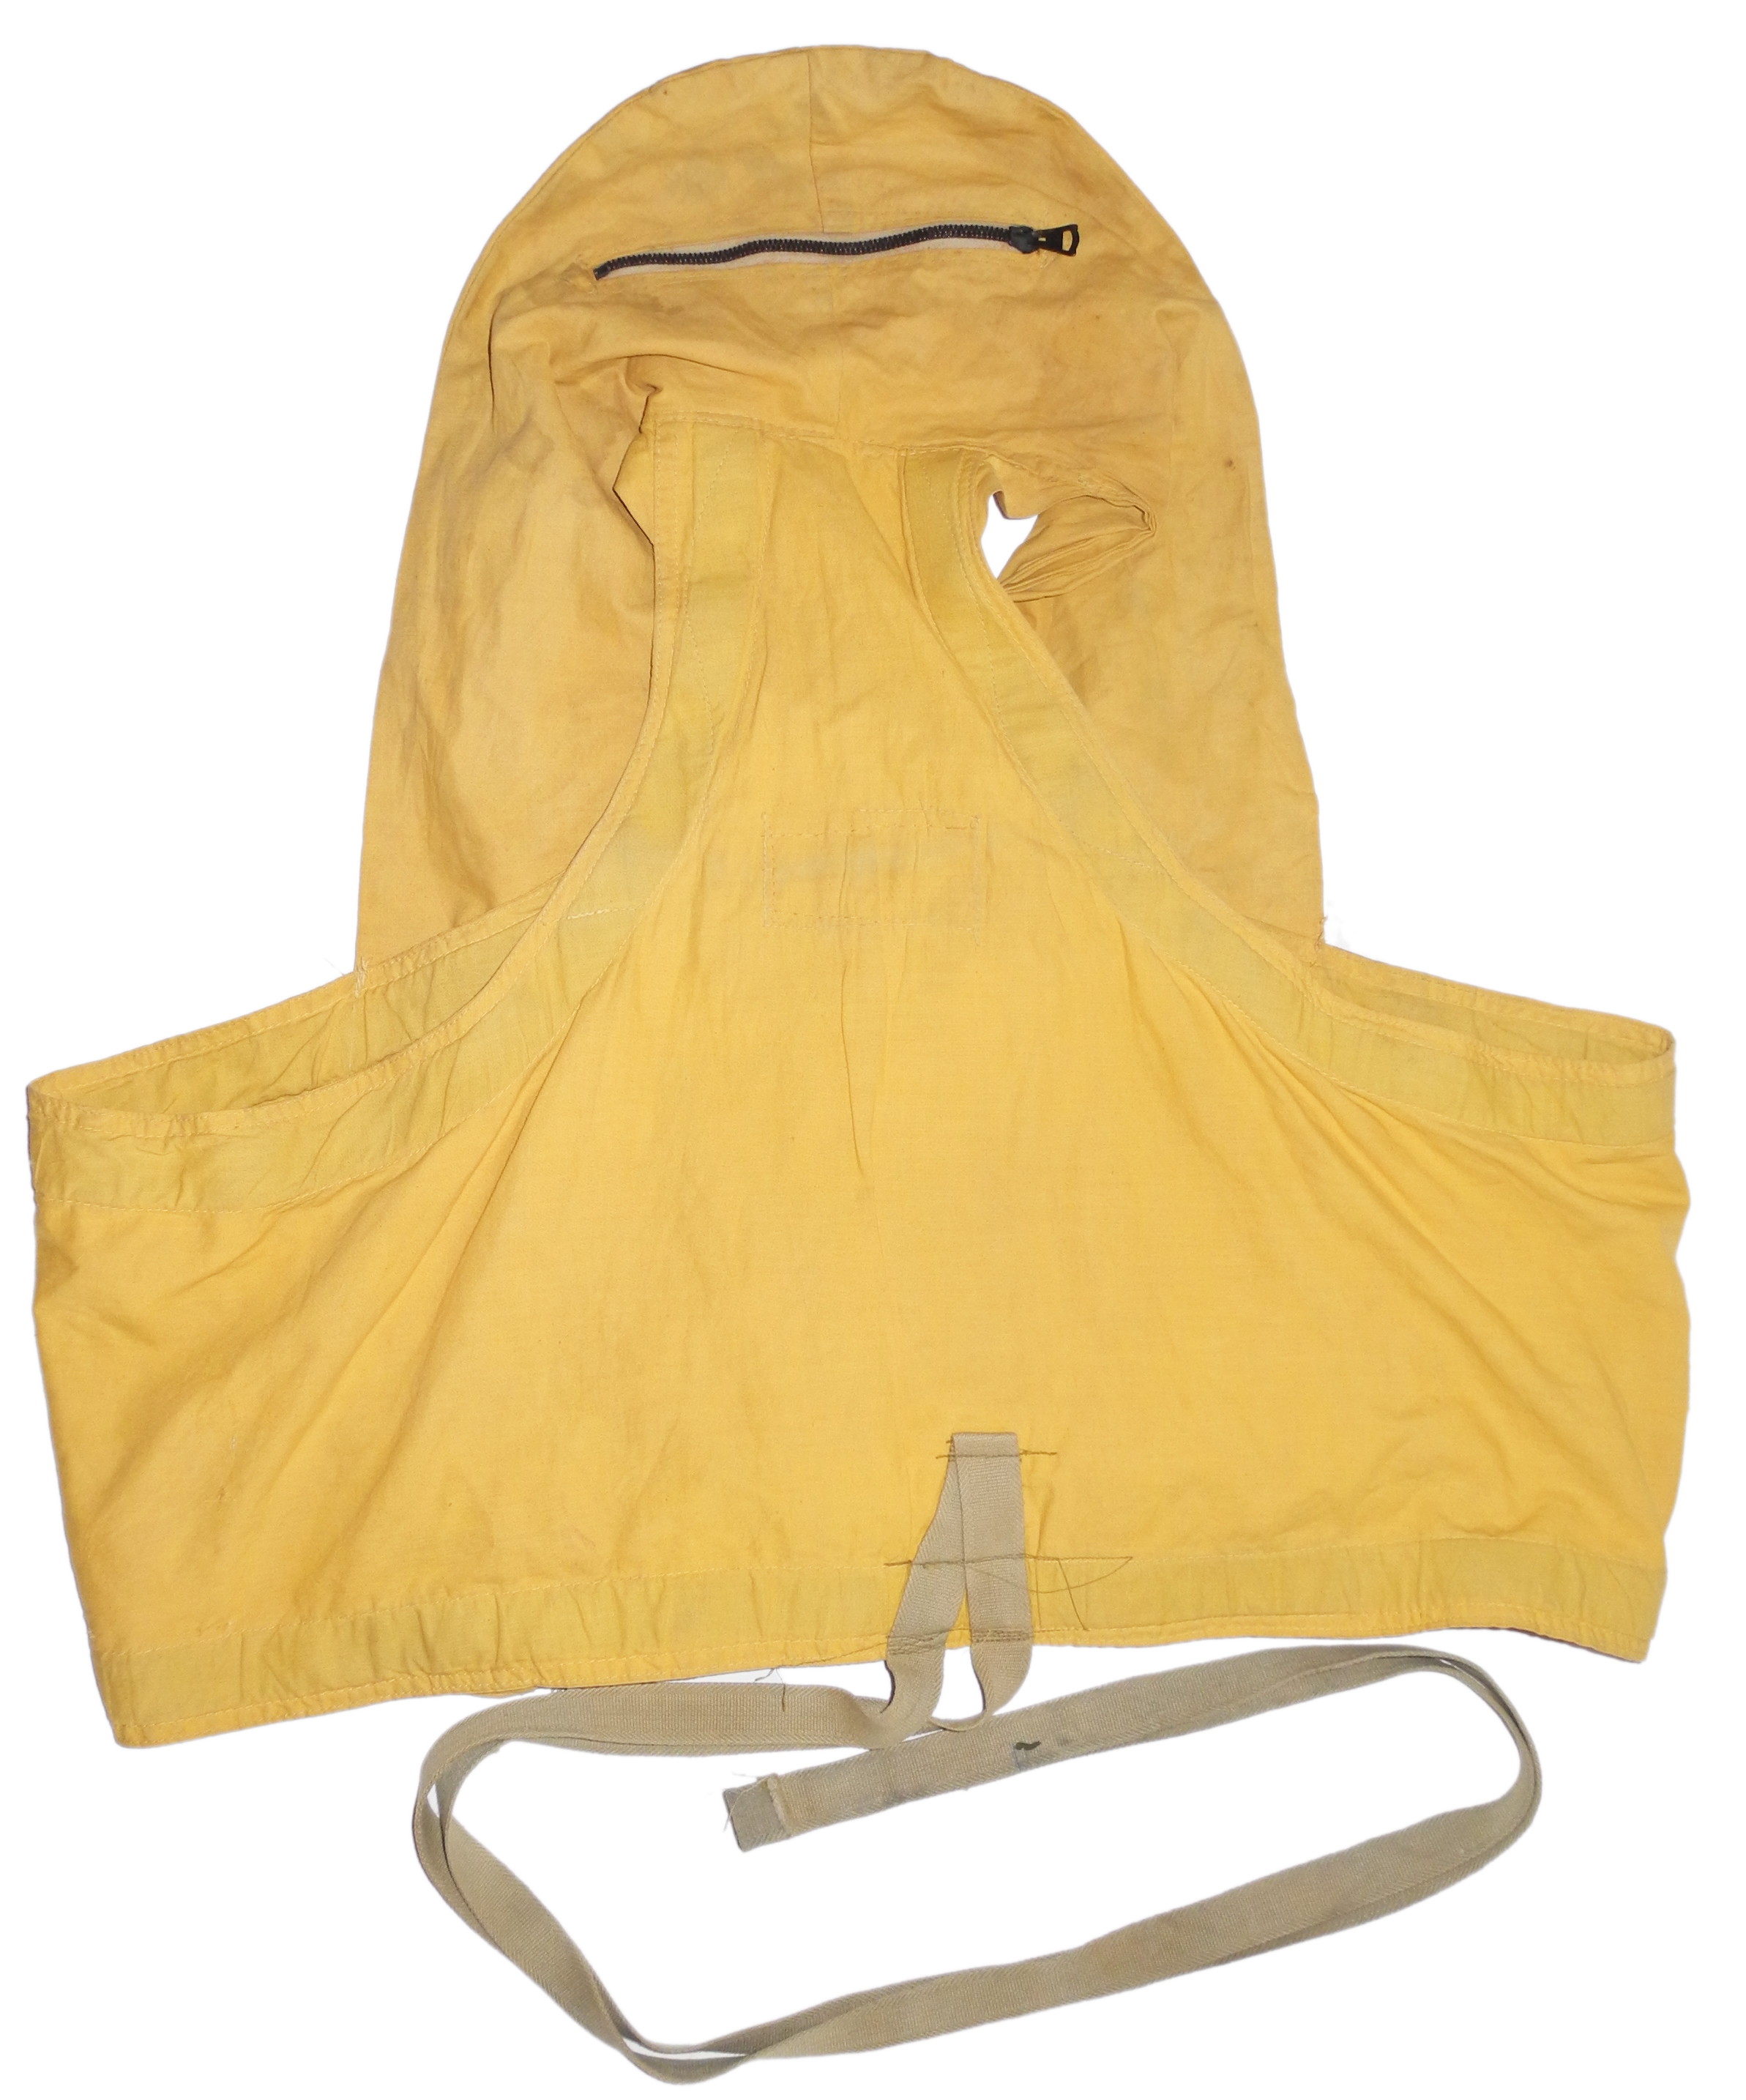 "RAF/RCAF 1932 pattern ""Mae West"" life jacket in yellow"